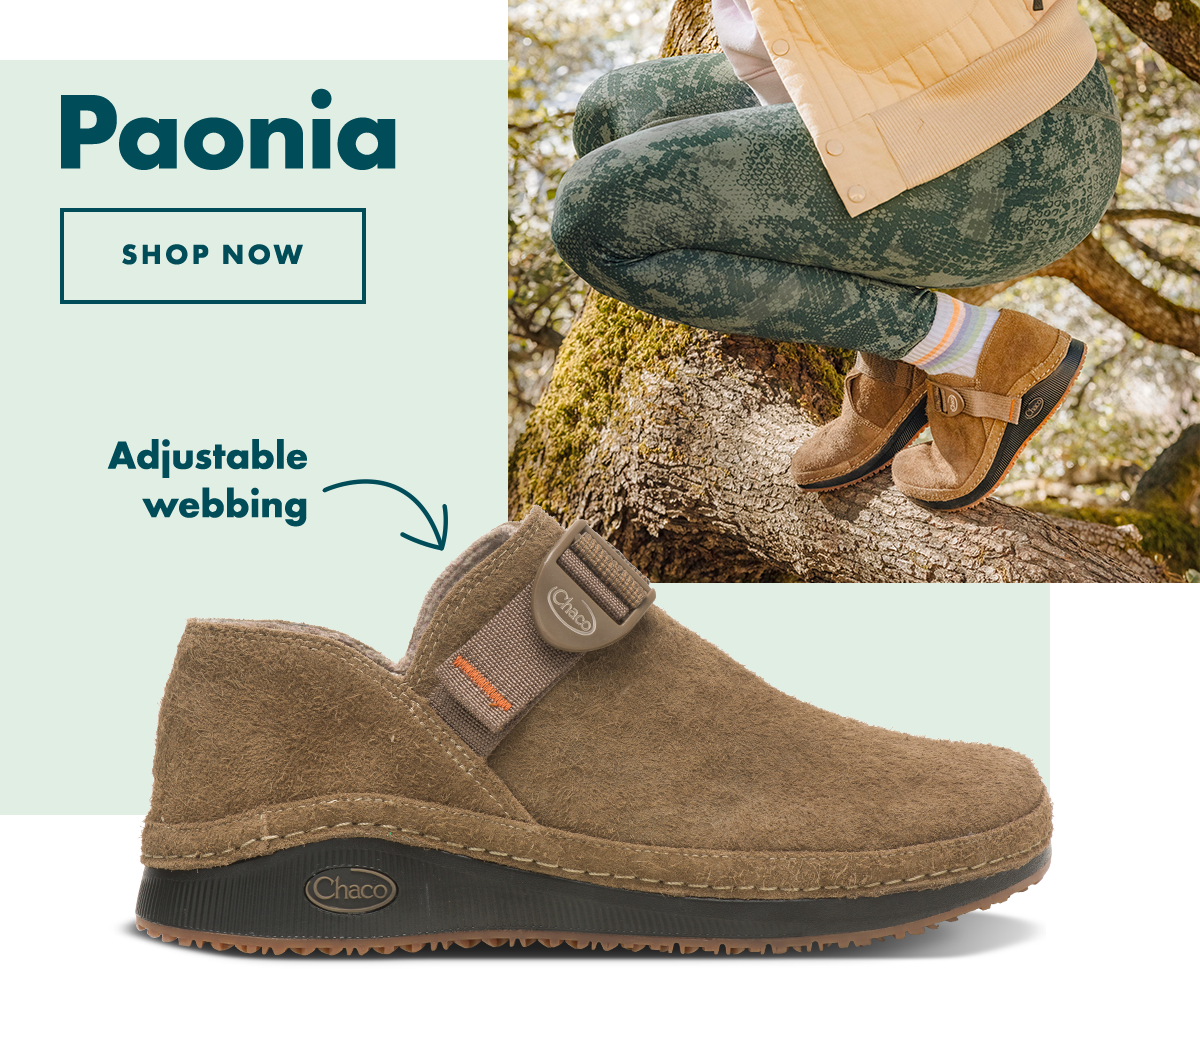 Paonia - Shop Now